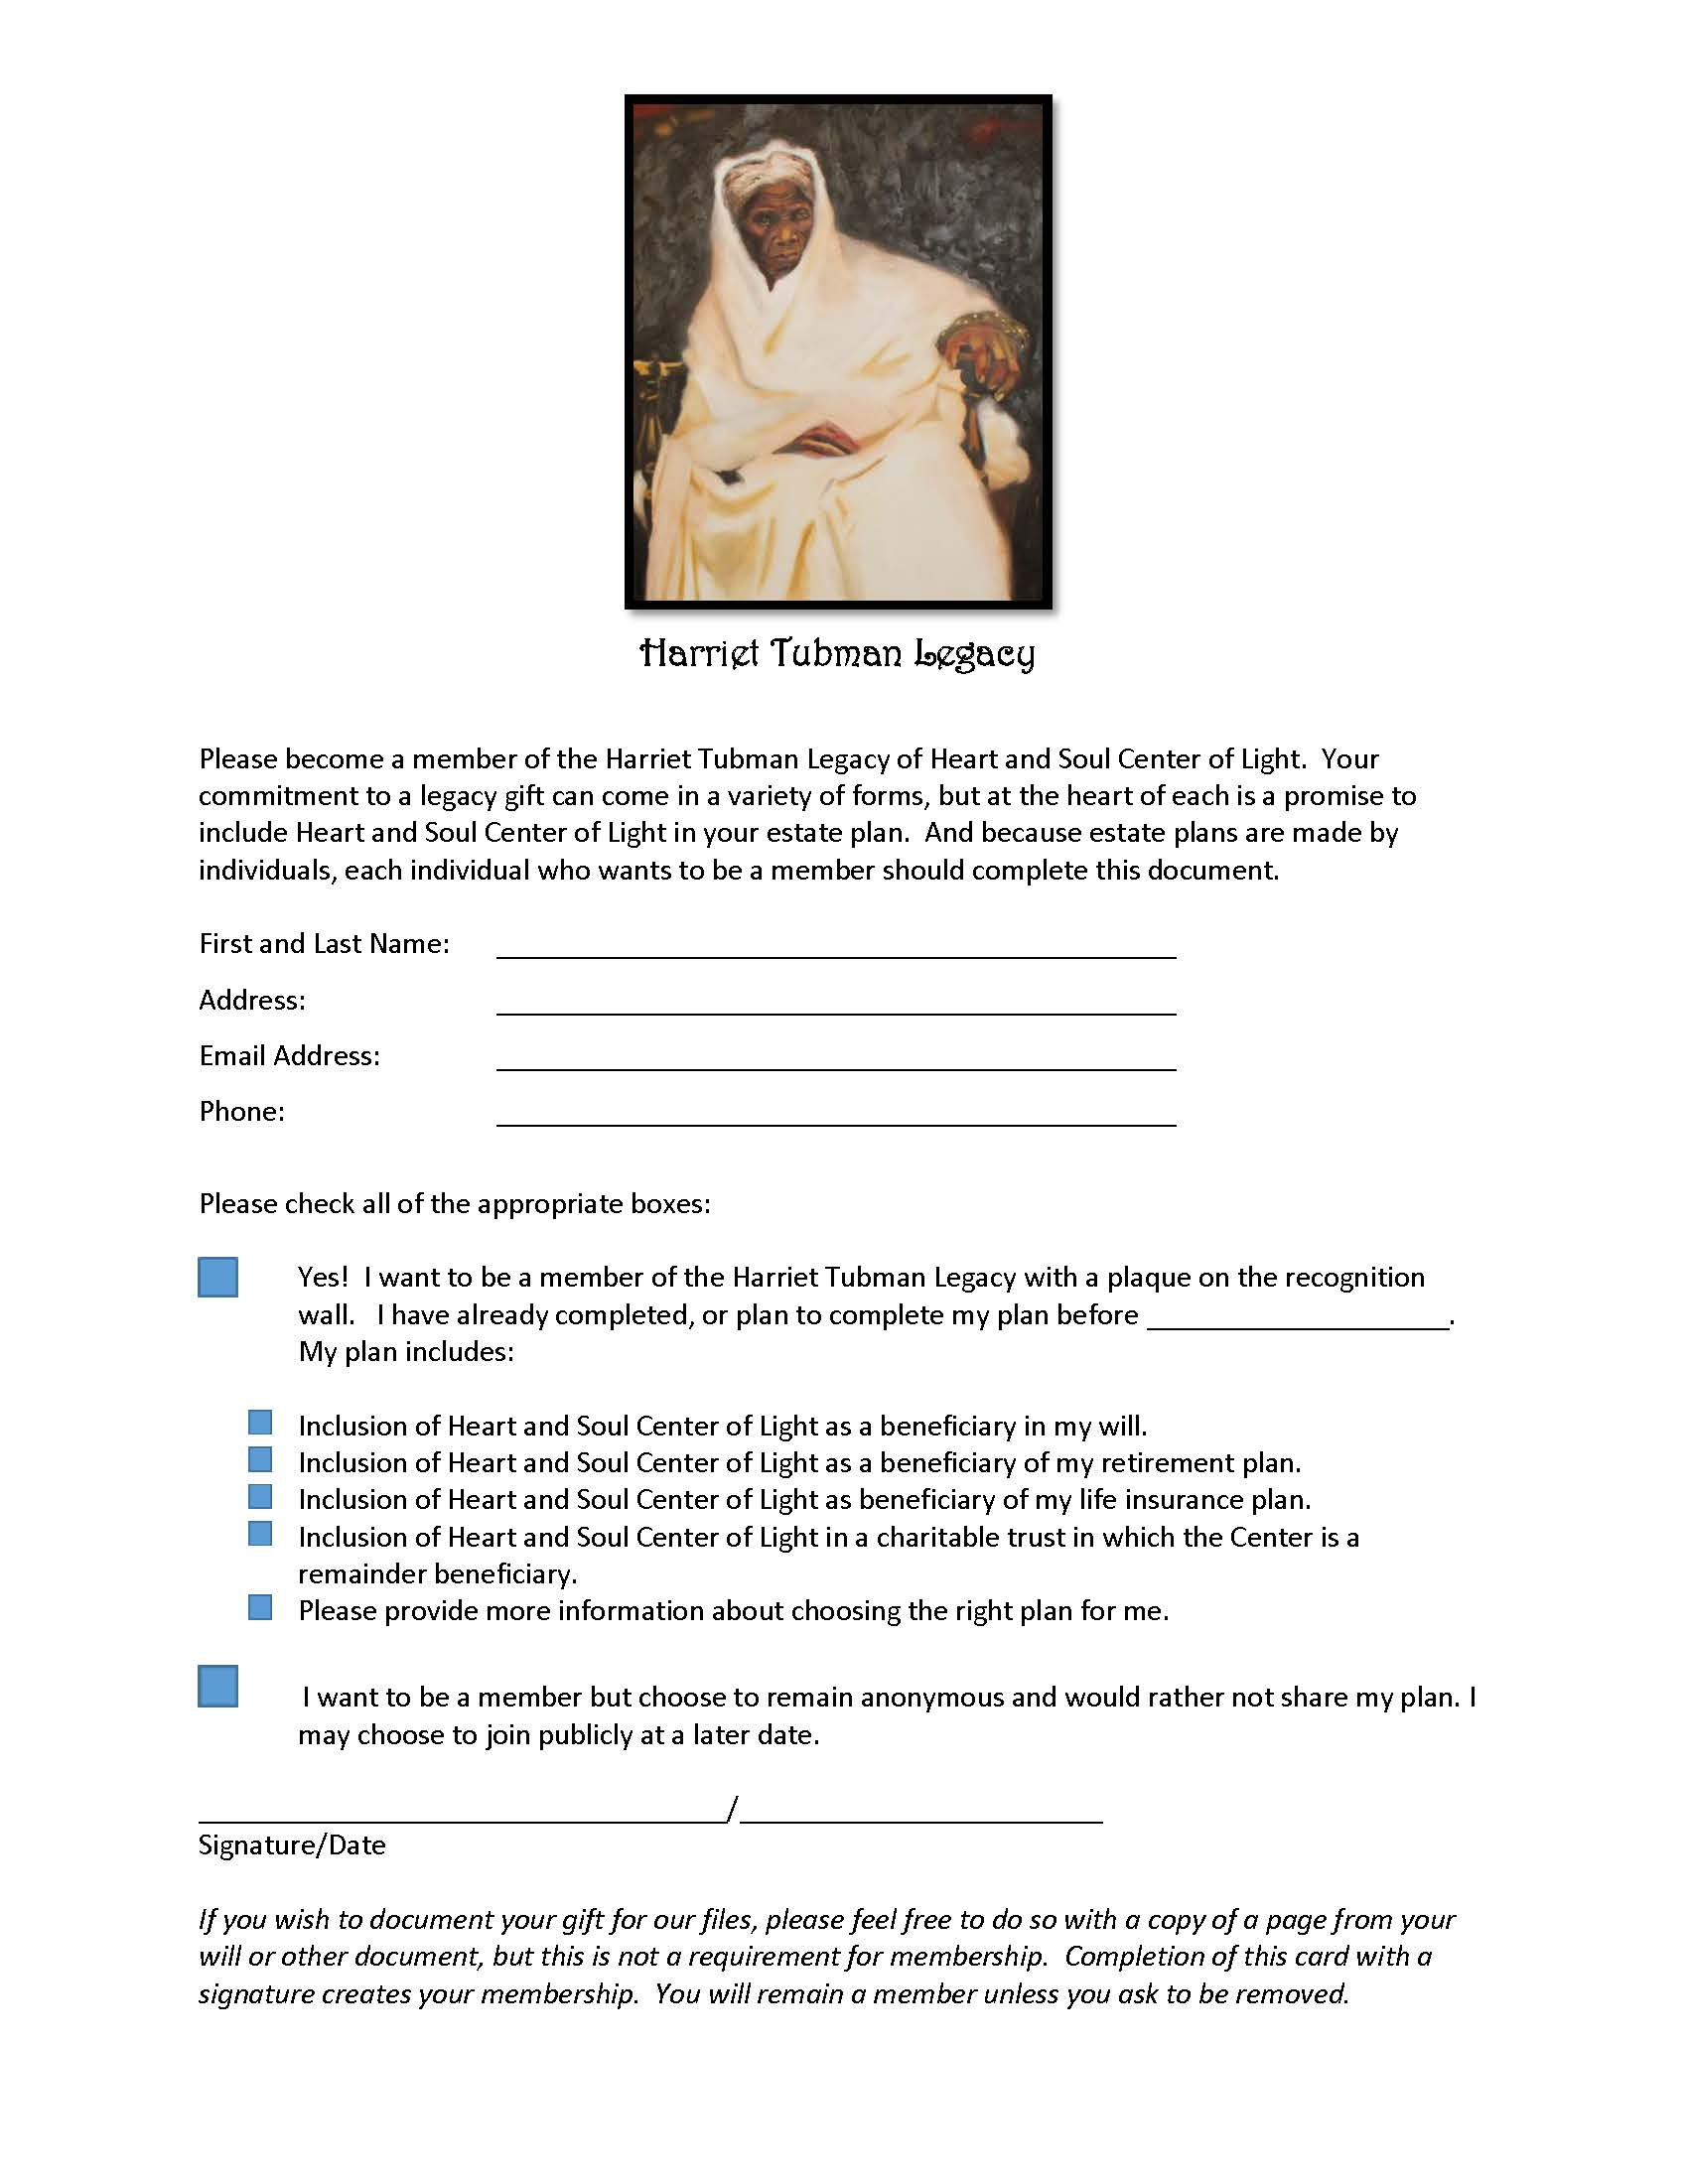 Tubman Society commitment form_v 3-srr